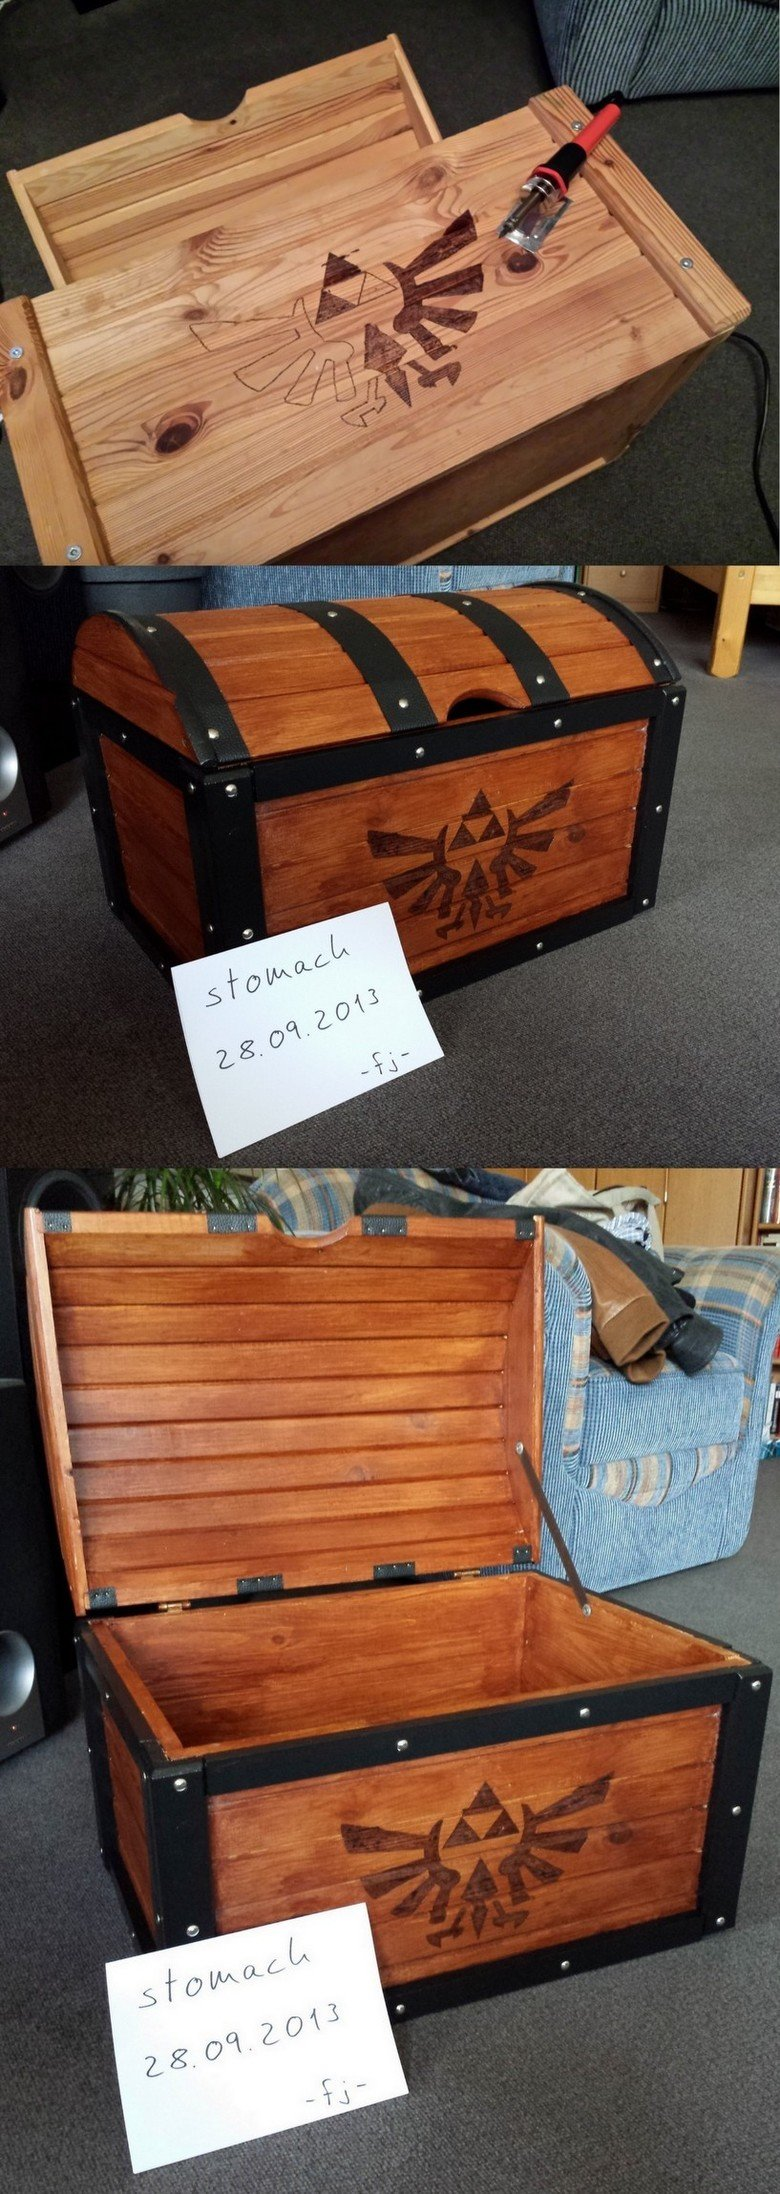 Zelda Chest - Made In Germany (100 % OC). Here people, take this! Finally, my own, self-built The Legend Of Zelda - Ocarina Of Time chest replica! My brother fo